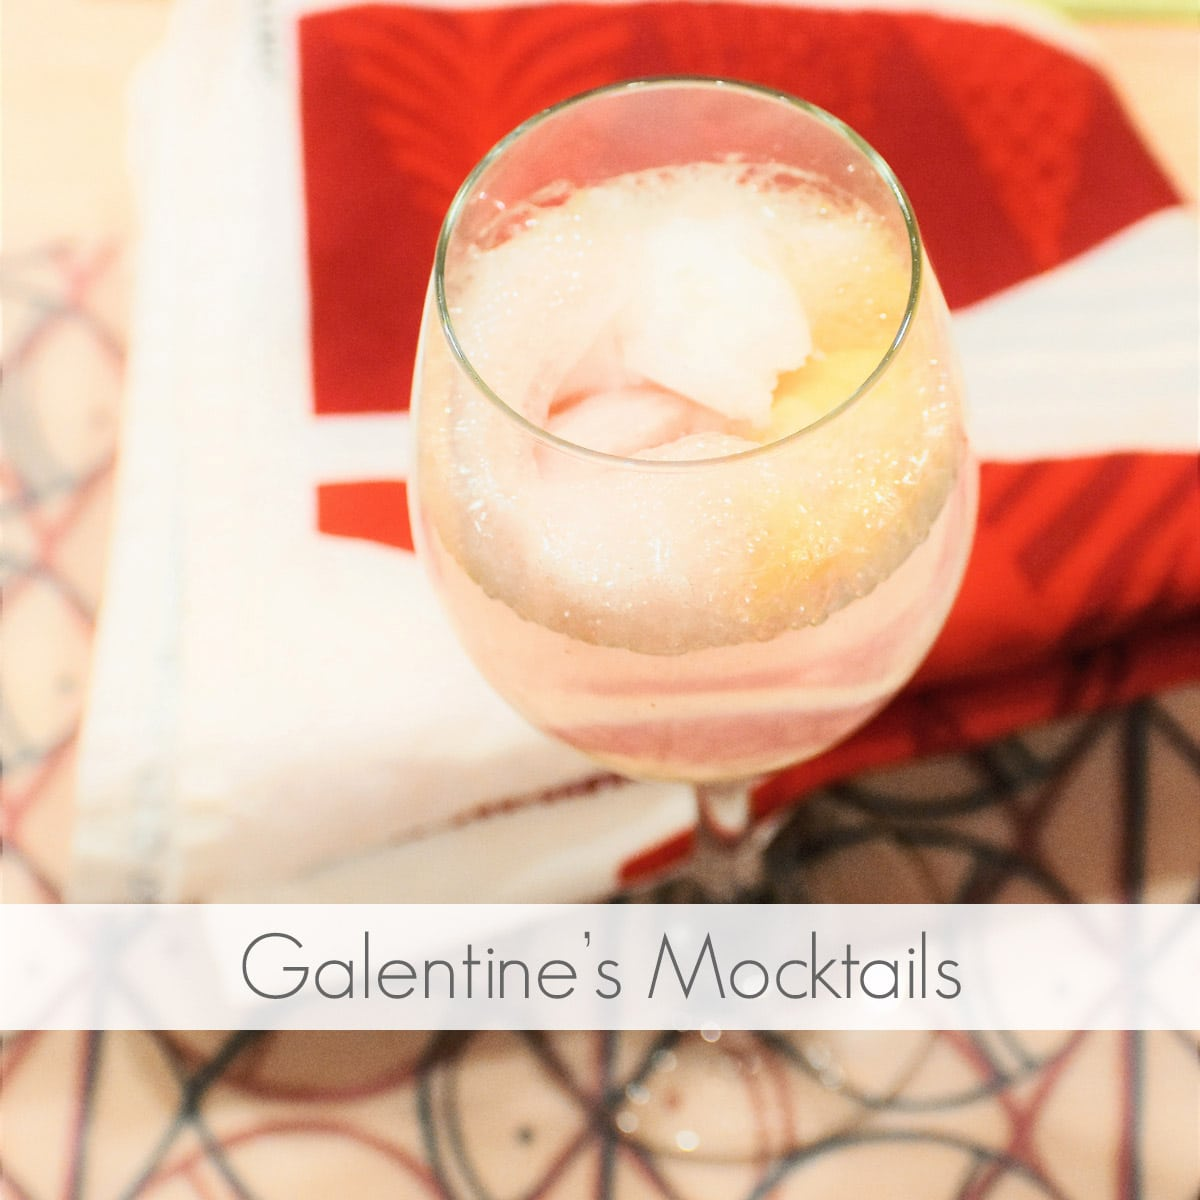 Top 3 Galentine's Day Mocktails